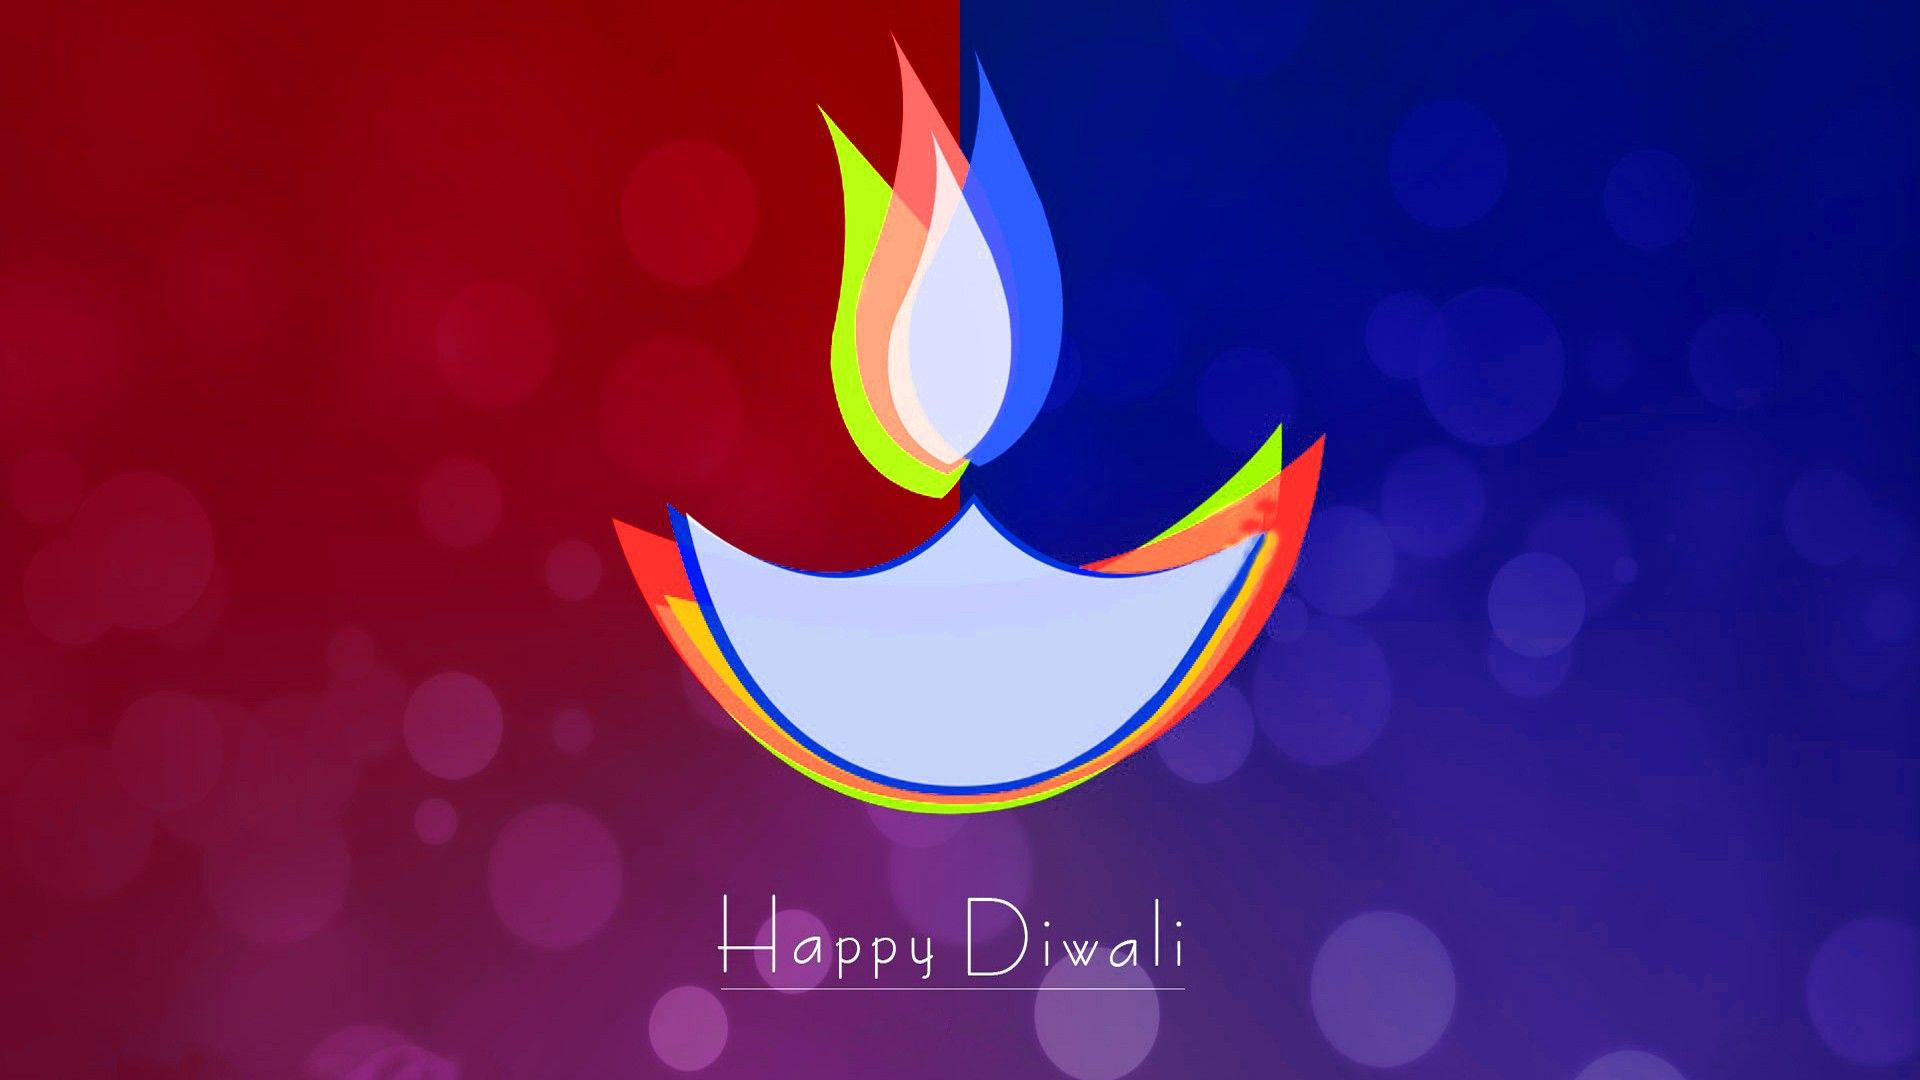 Happy diwali hd wallpaper happy diwali hd wallpapers - Hd wallpaper happy diwali ...